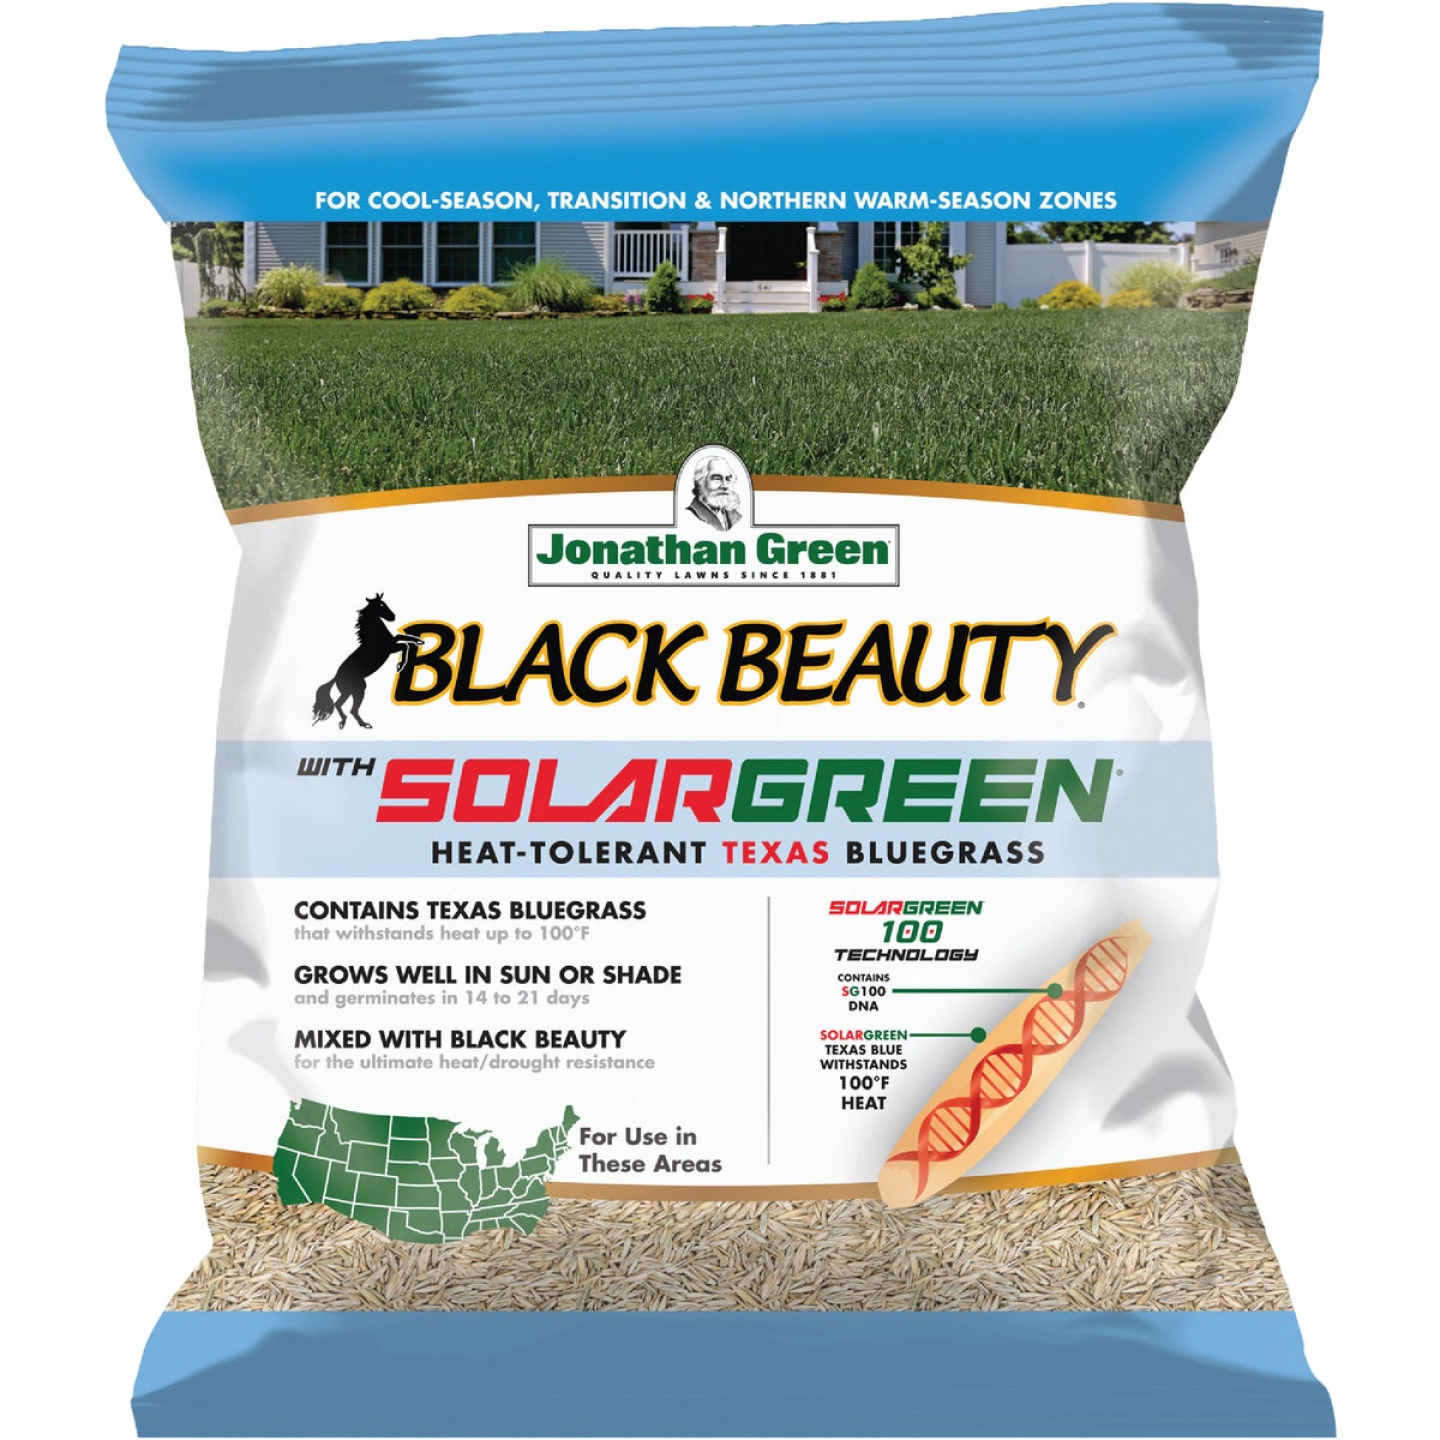 Jonathan Green Black Beauty 3 Lb. Texas Bluegrass Seed with Solargreen Image 1